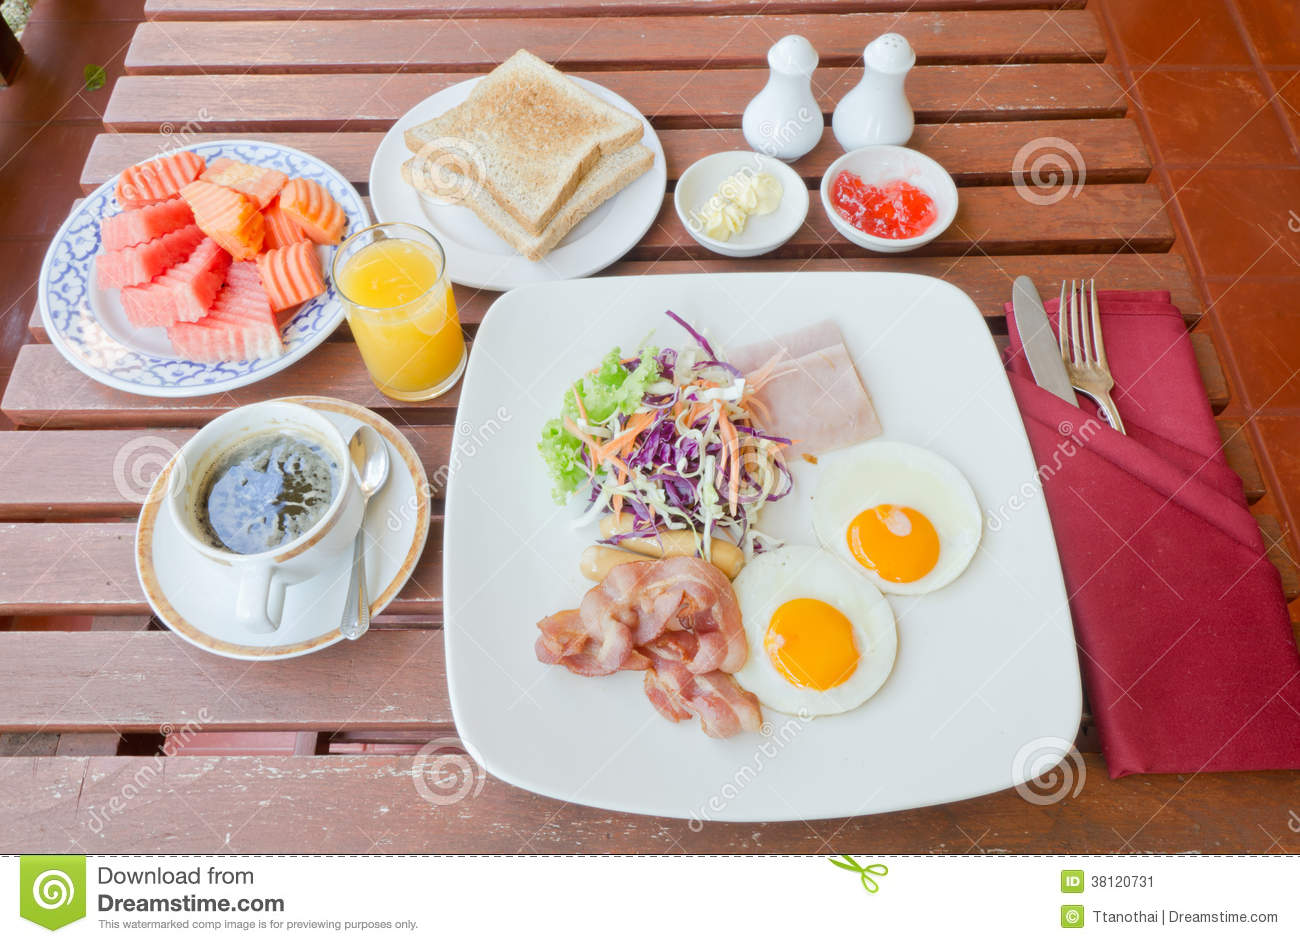 Table Setting For Breakfast Set Of American Breakfast On Wood Table Stock Image Image 38120731